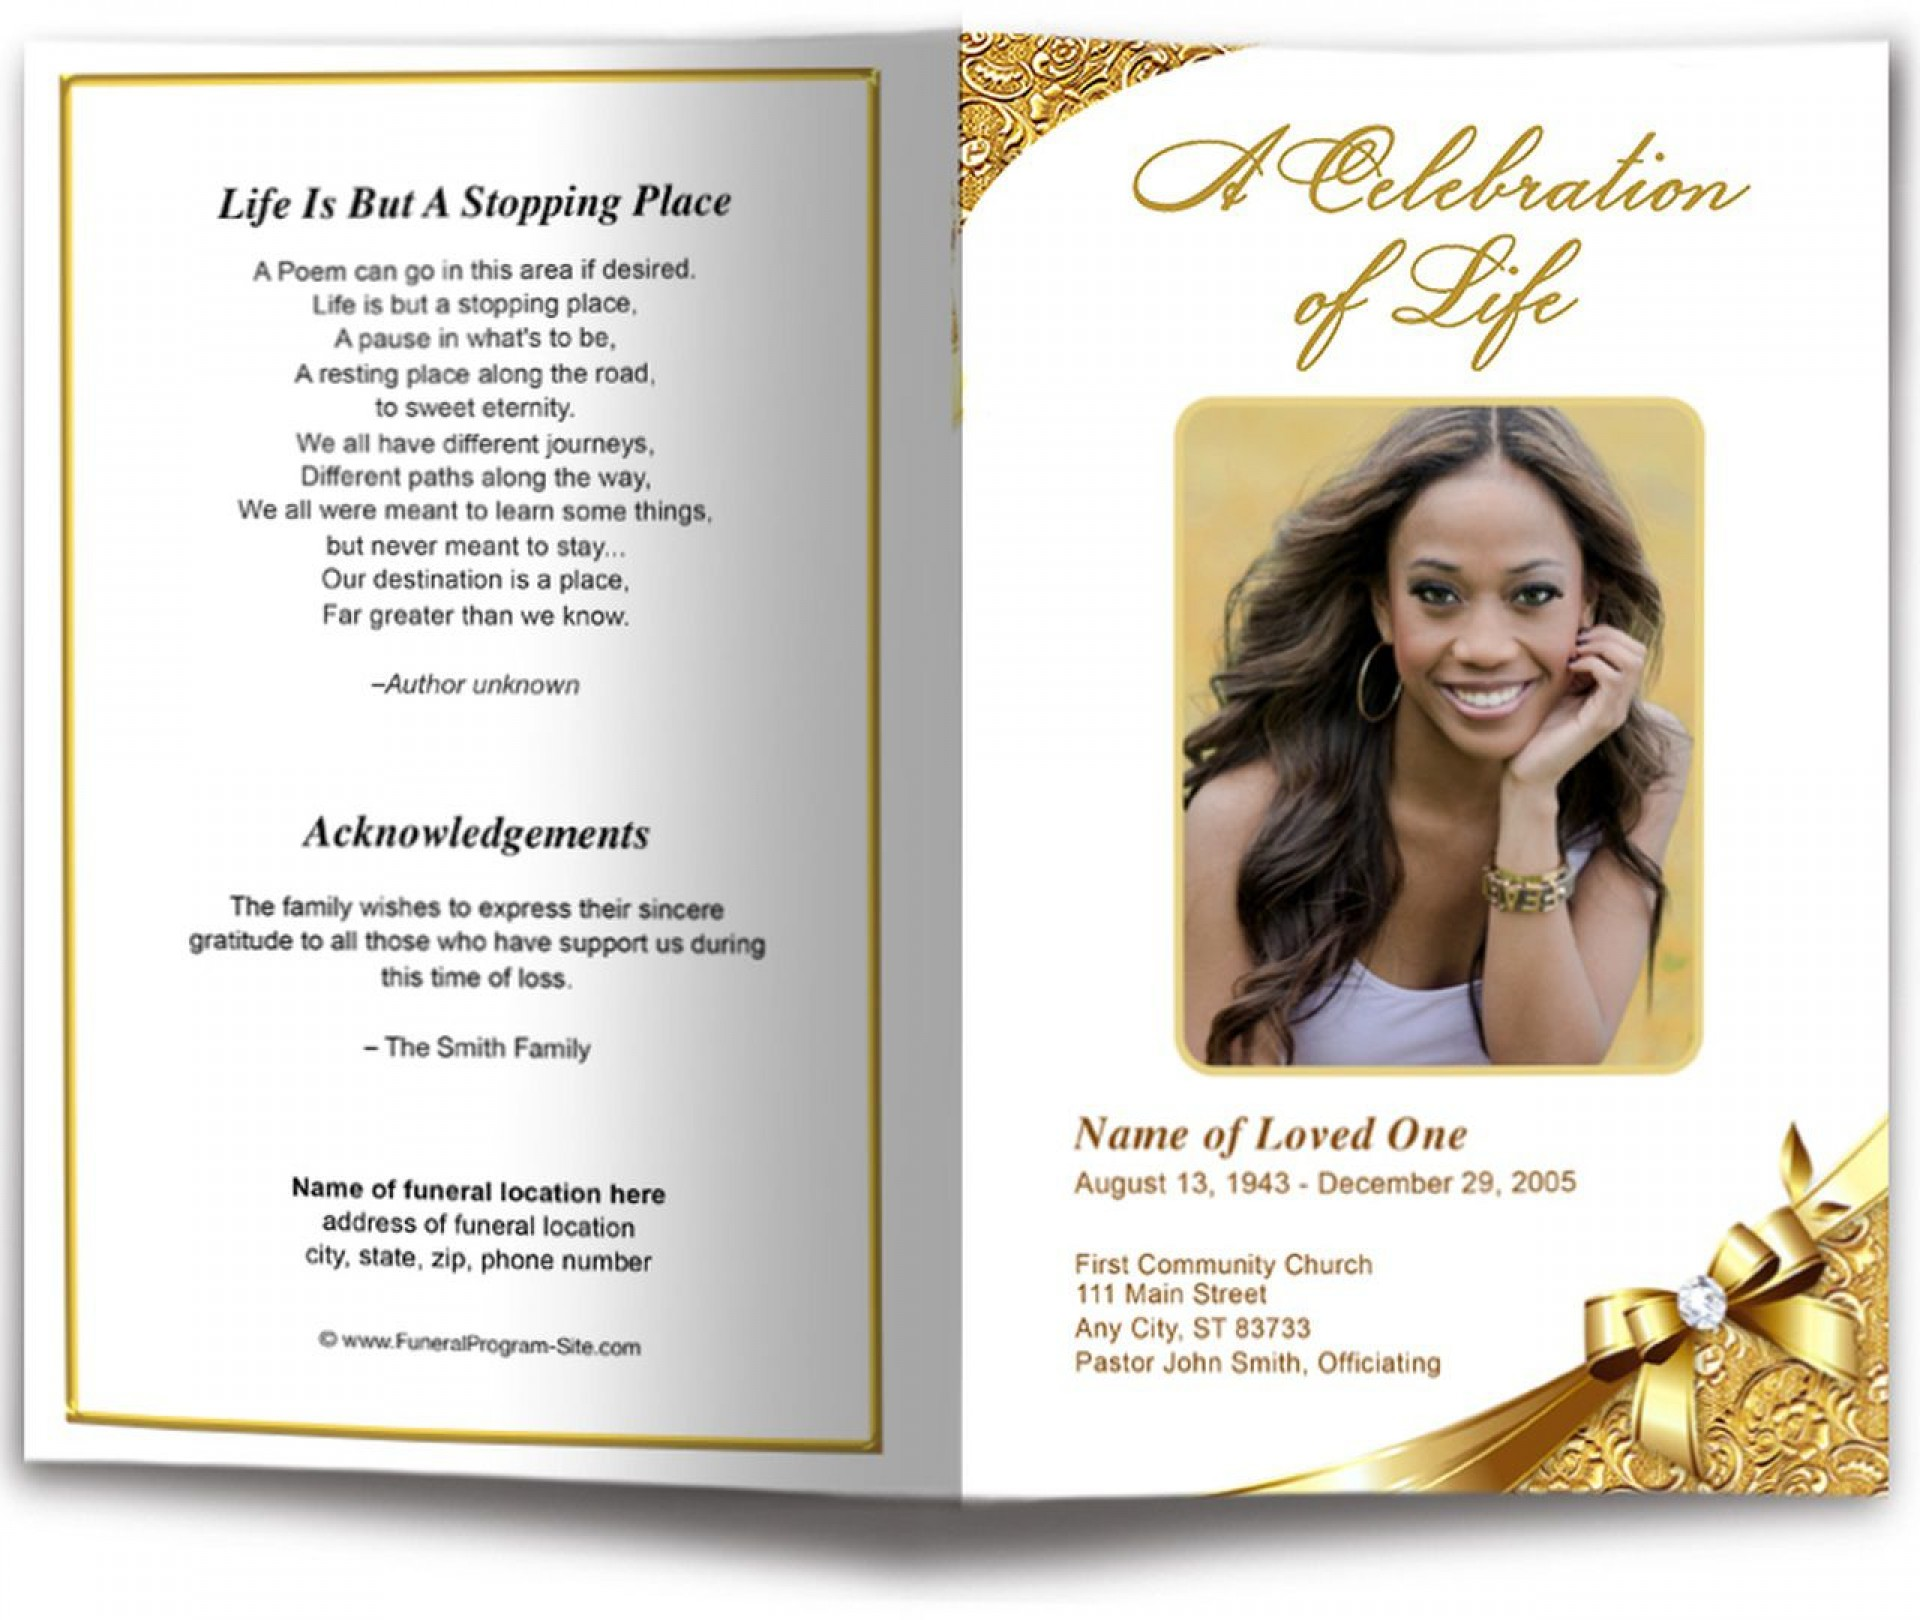 007 Astounding Funeral Program Template Free Example  Blank Microsoft Word Layout Editable Uk1920